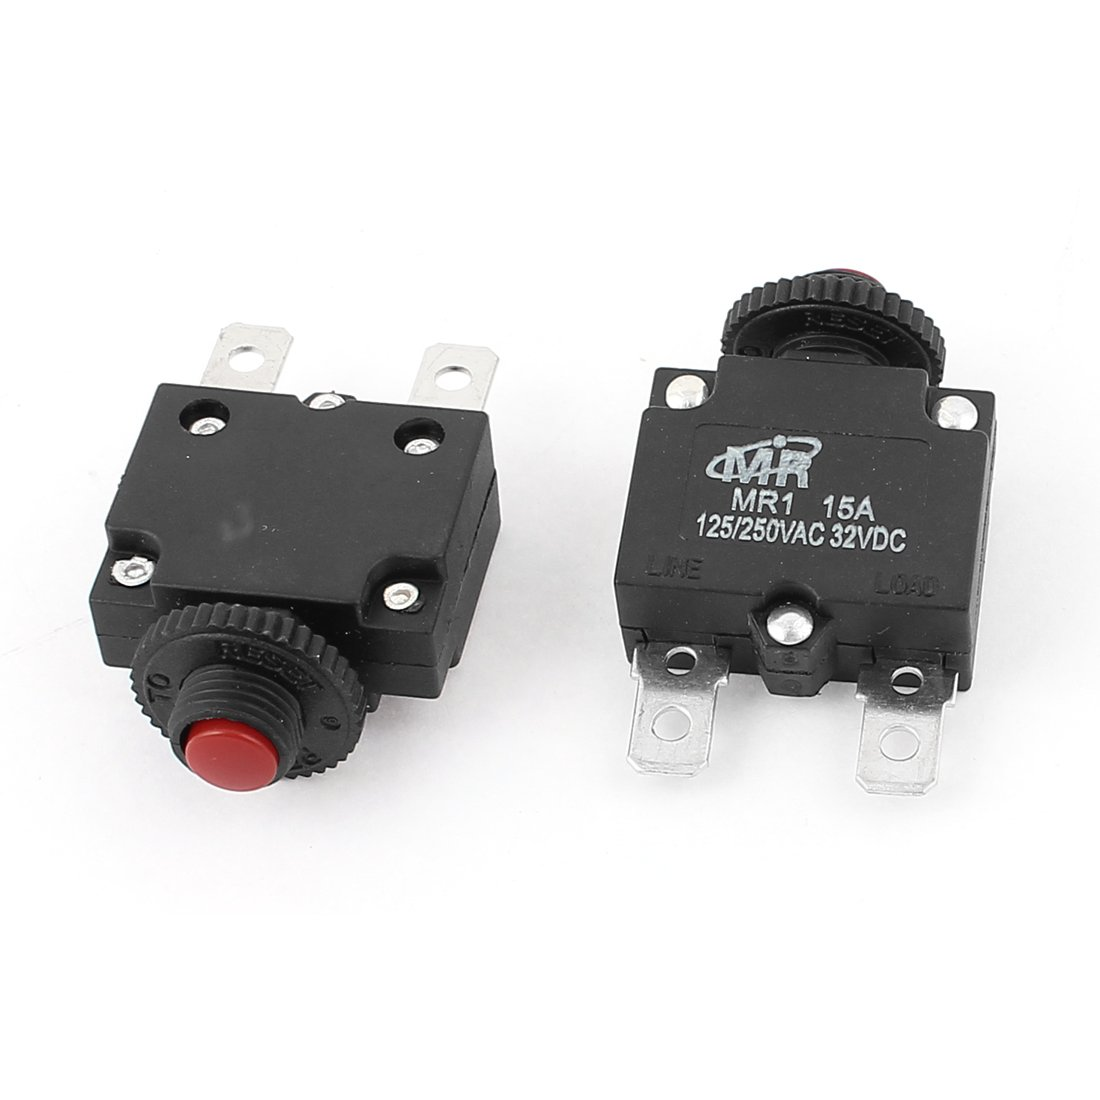 Ac 125 250v Dc 32v 15a Push Button Reset Terminal Circuit Breaker Types Video Different Of Breakers Ehow 2pcs